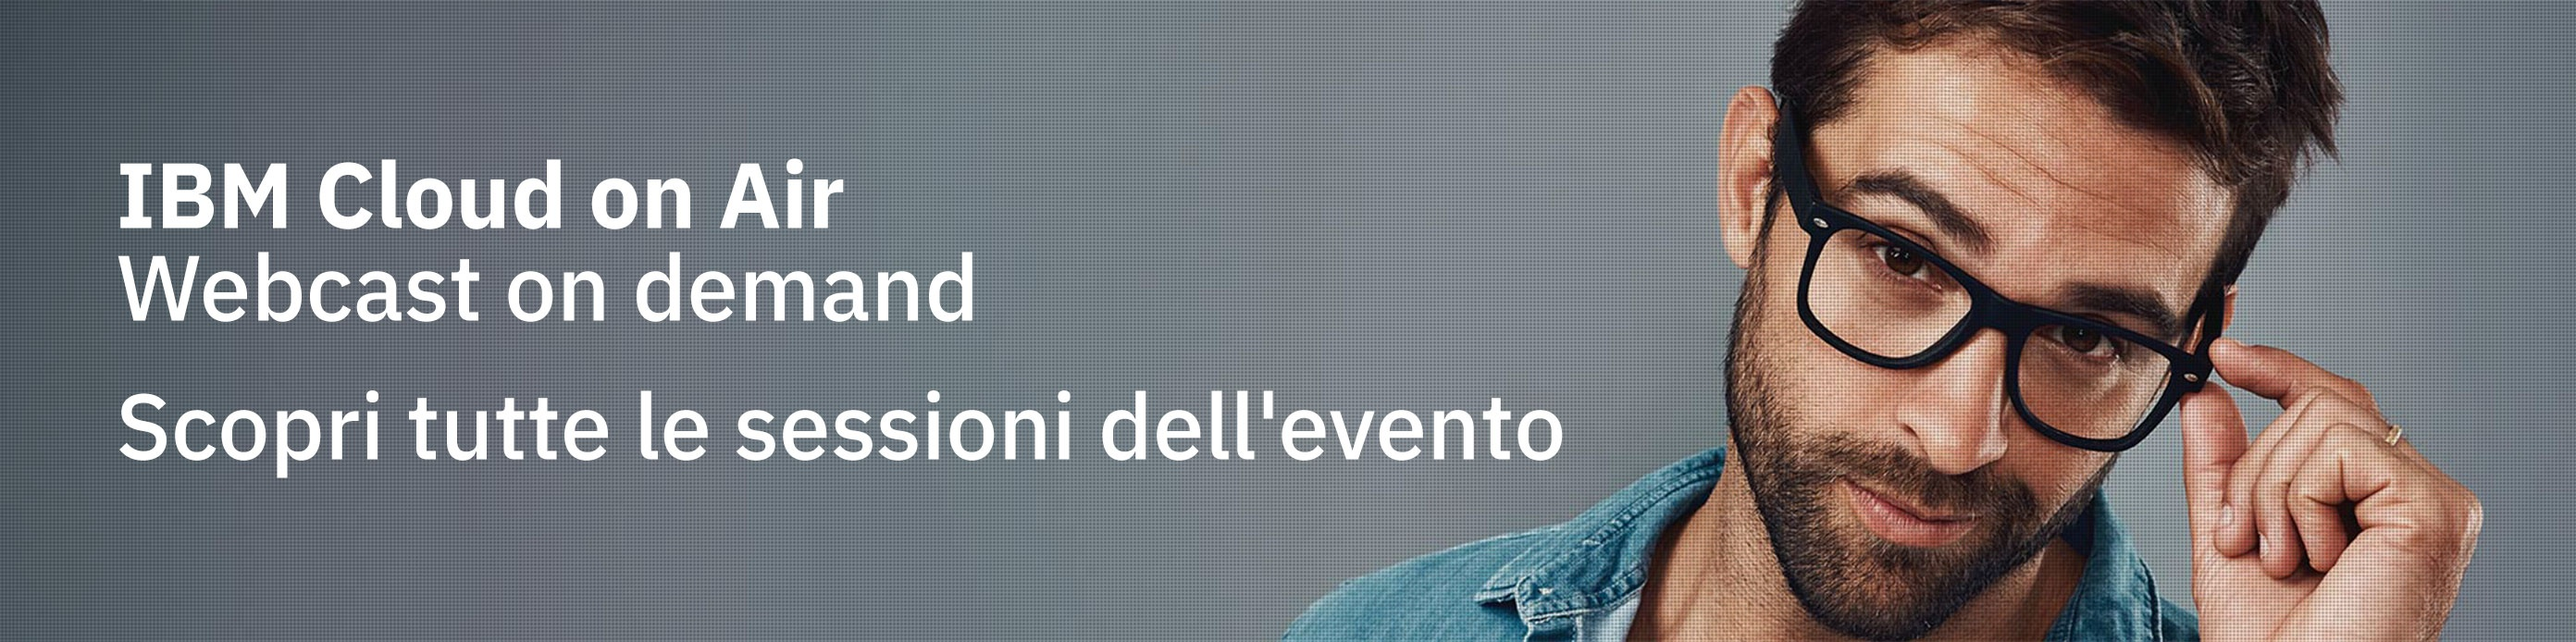 Webcast On demand - Scopri tutte le sessioni dell'evento